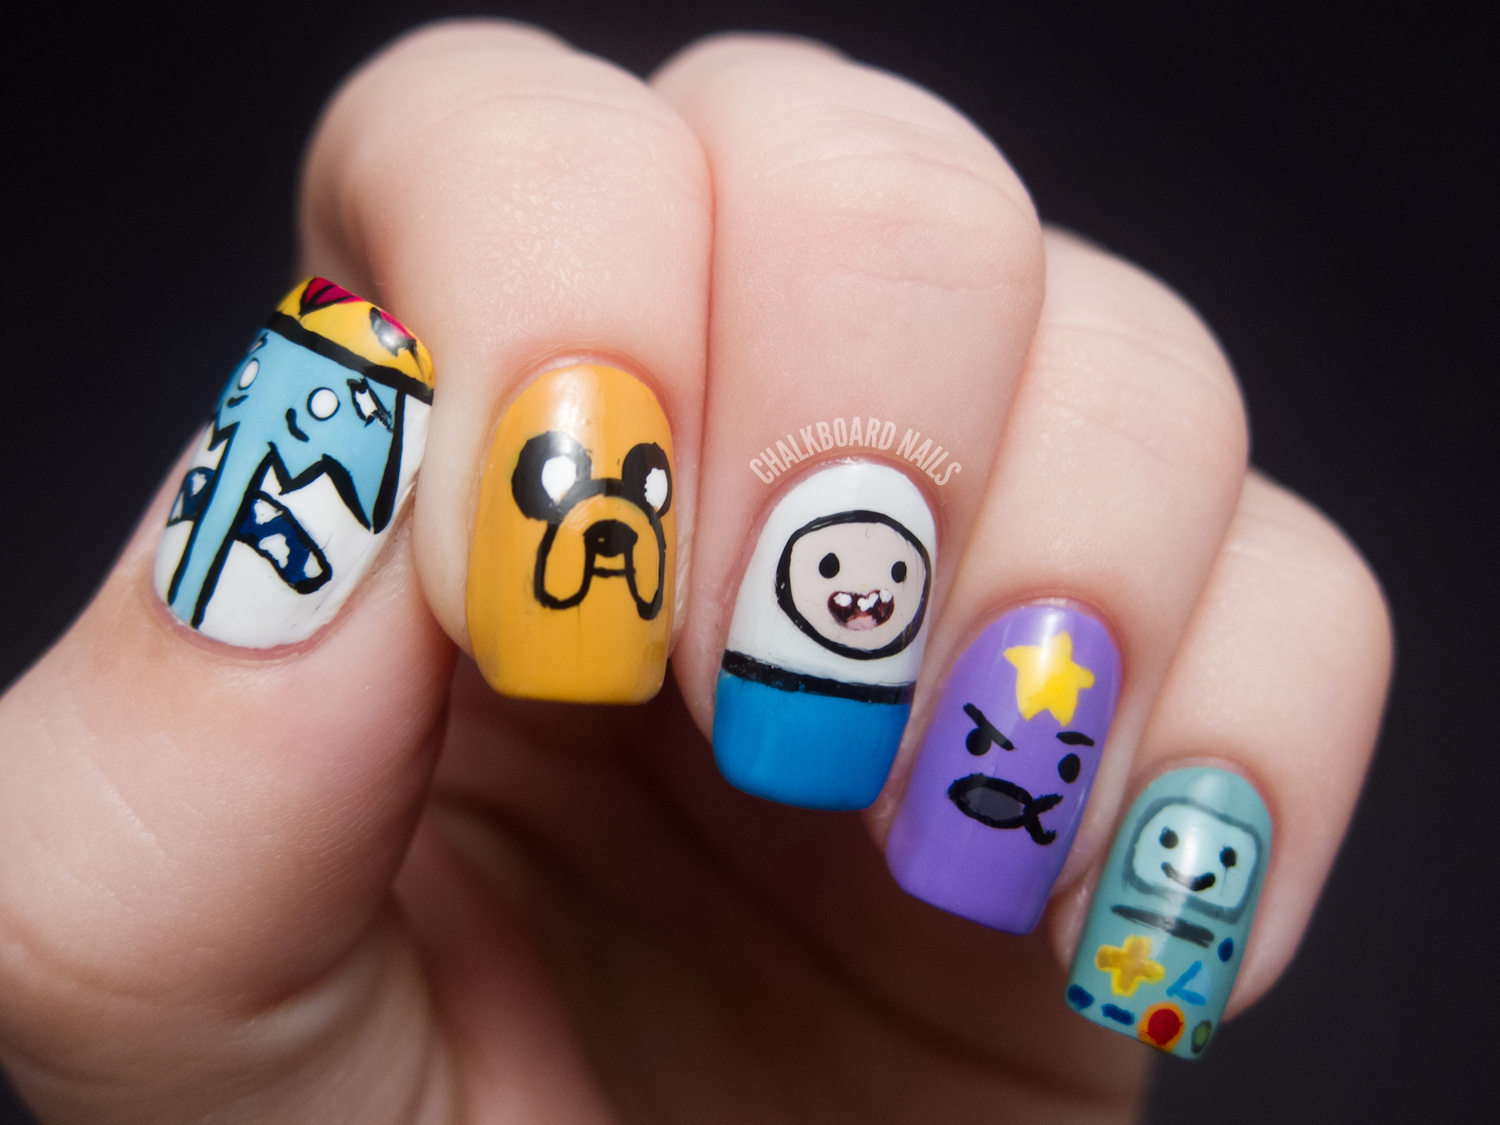 What time is it? - Adventure Time Nail Art | Chalkboard Nails | Nail ...